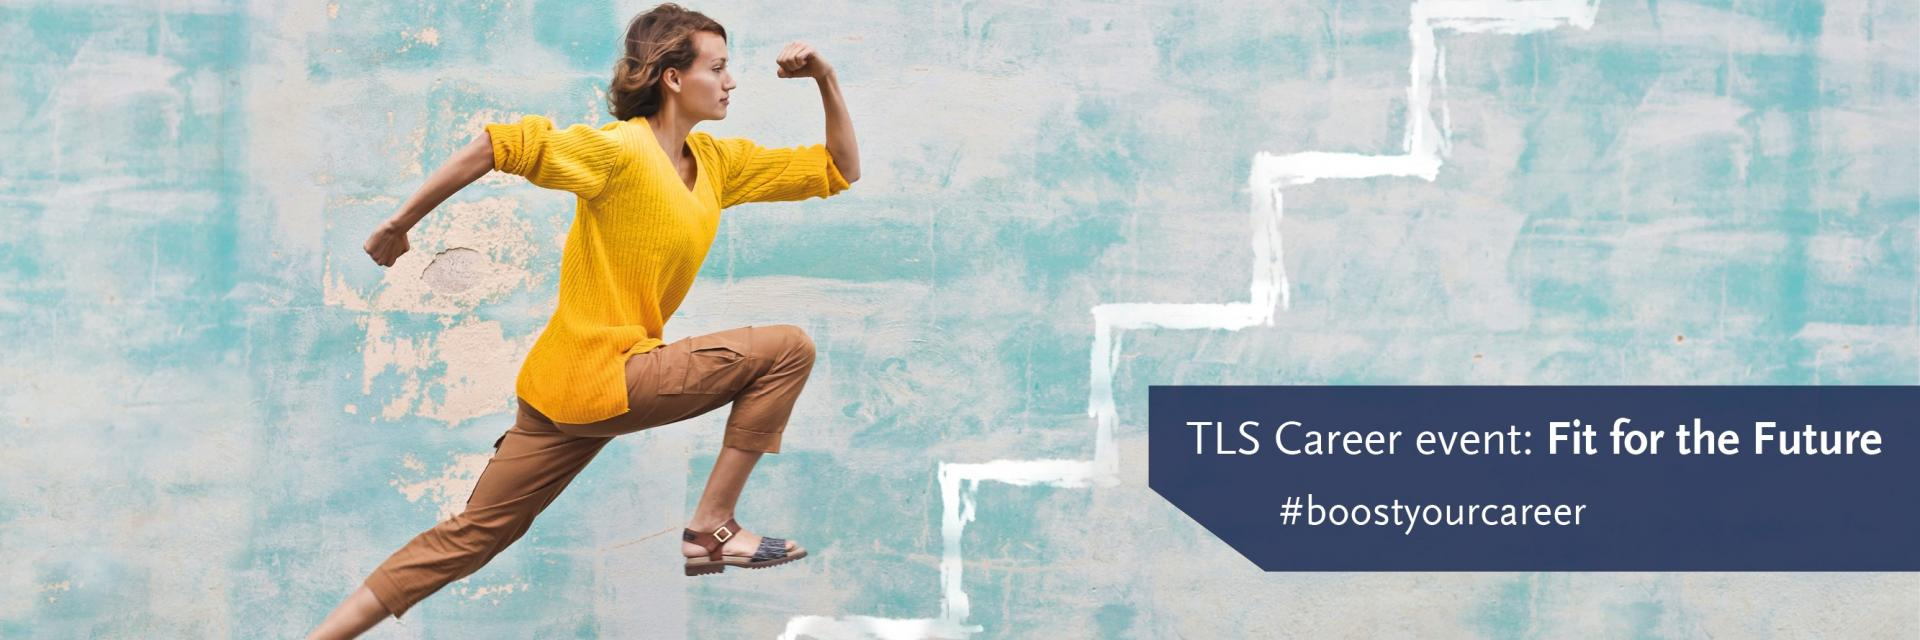 TLS Career event